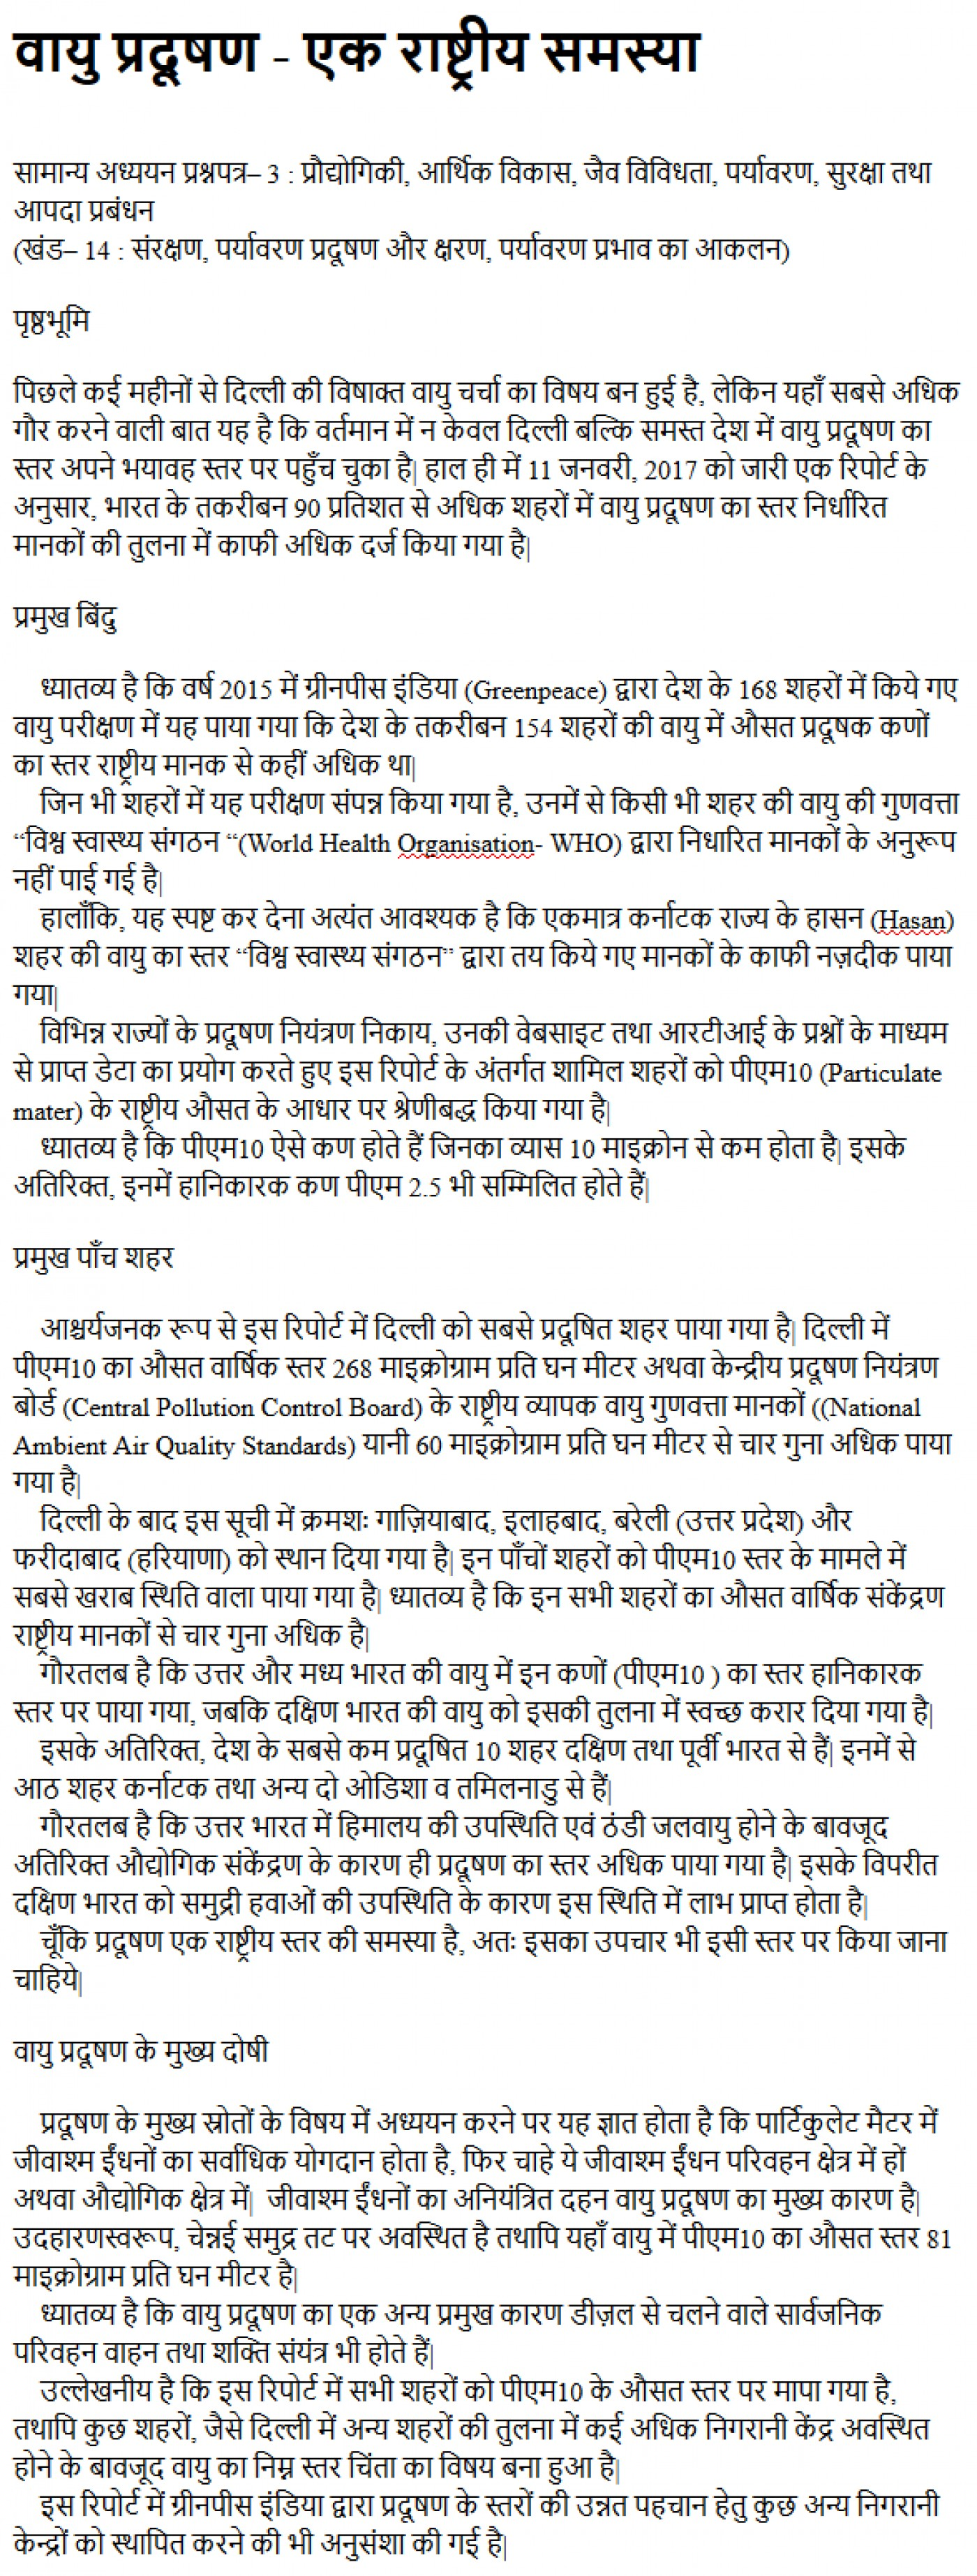 027 Essay On Air Pollution In Hindi Cause And Effect Astounding About Cities Noise Water 1400